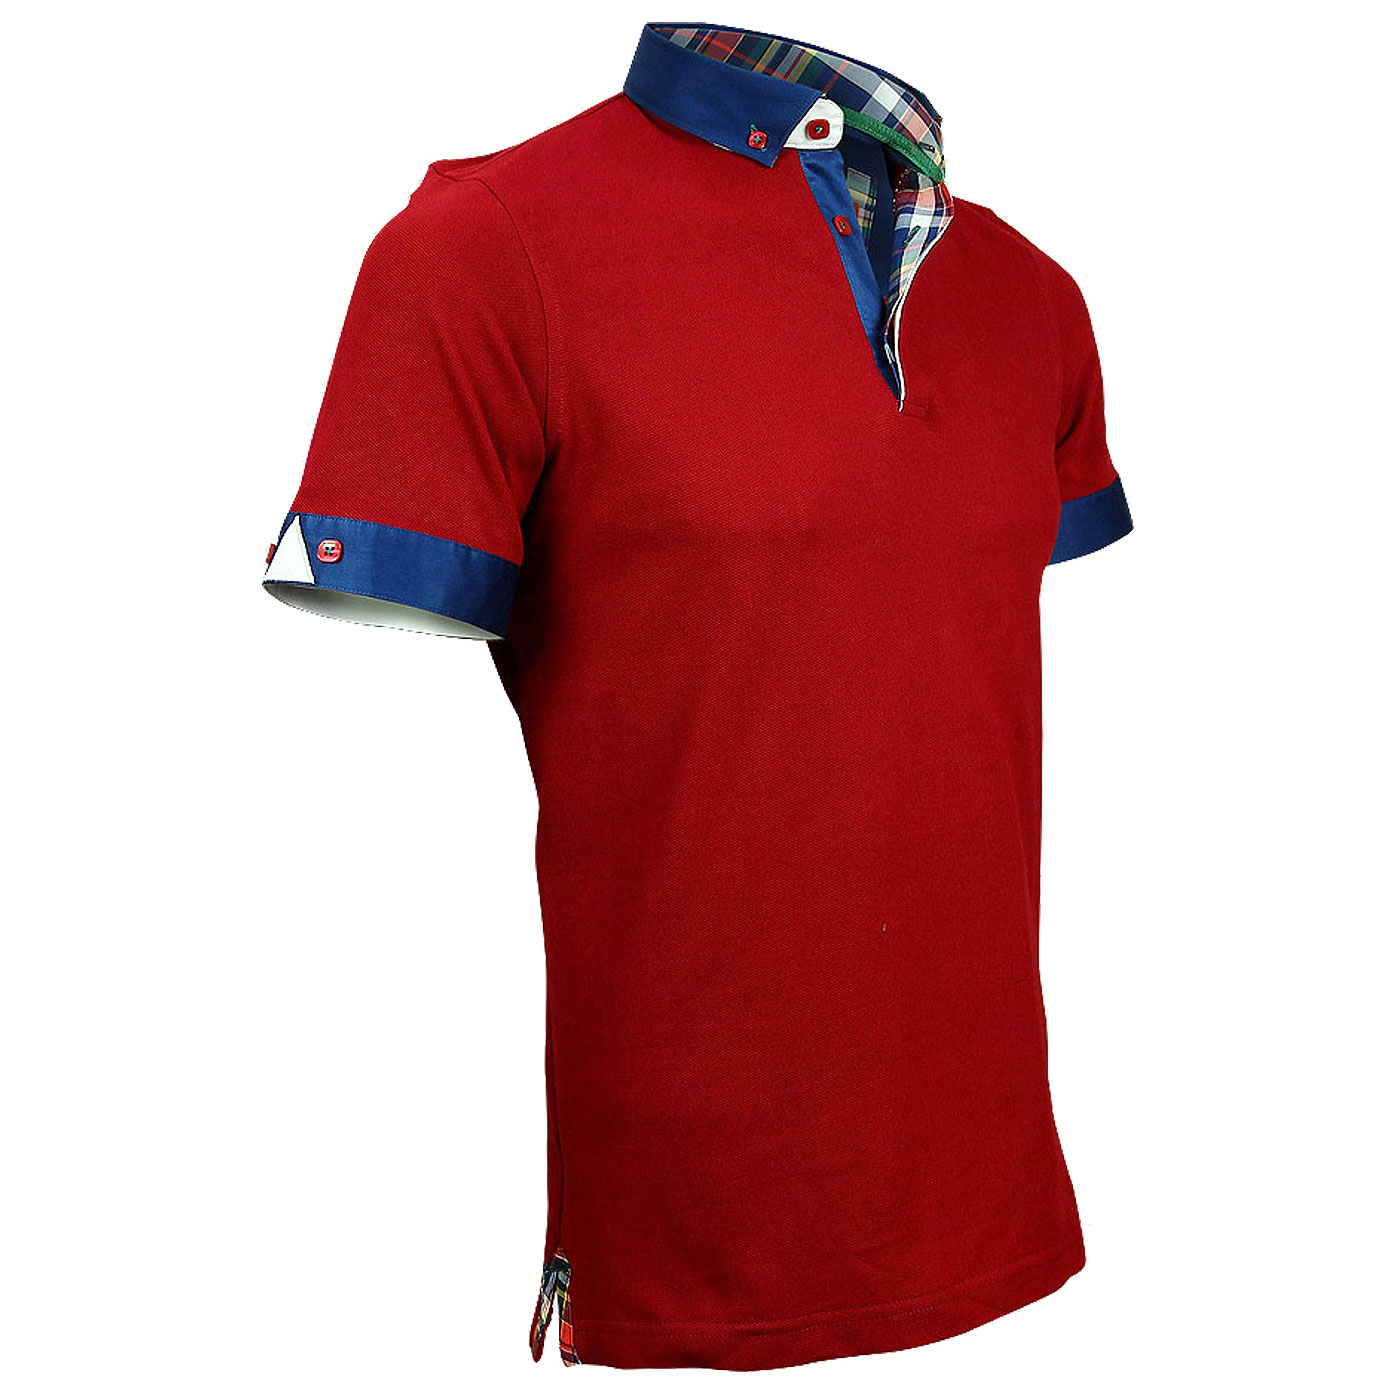 Polo short or long sleeve shirt for men: Discover Webmenshirts's catalog